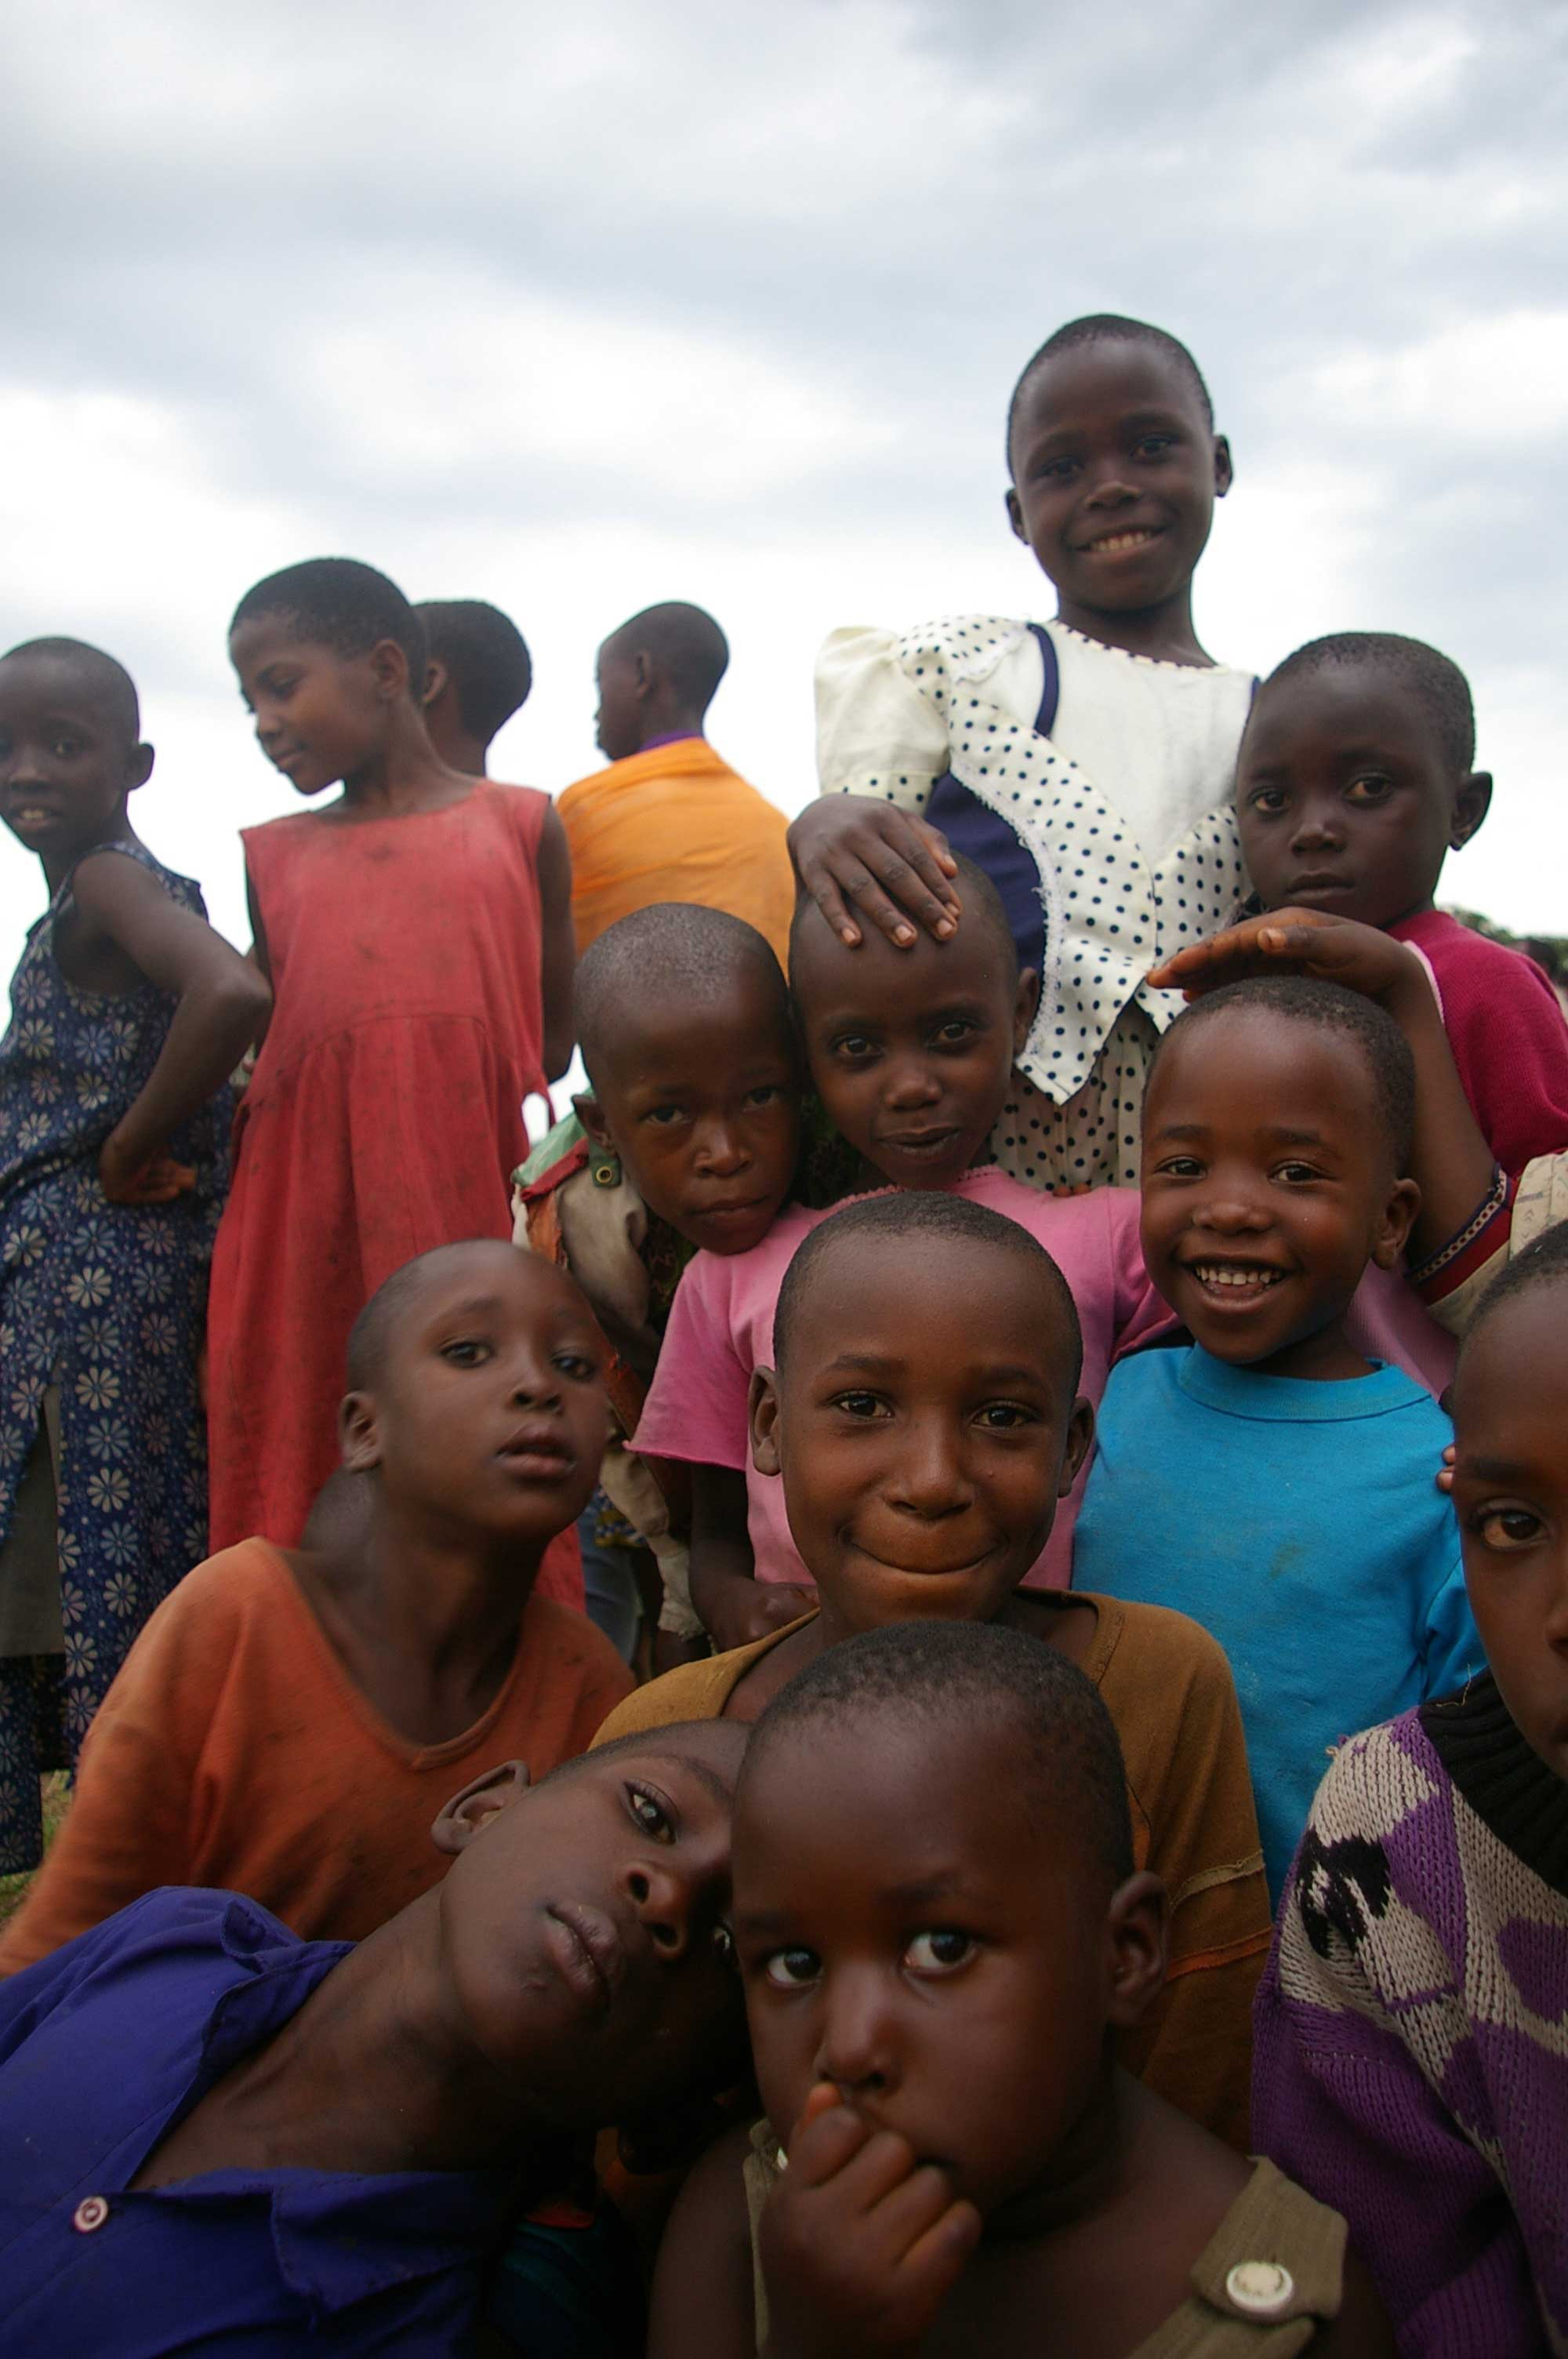 Children at Imbabazi Orphanage smiling for the camera